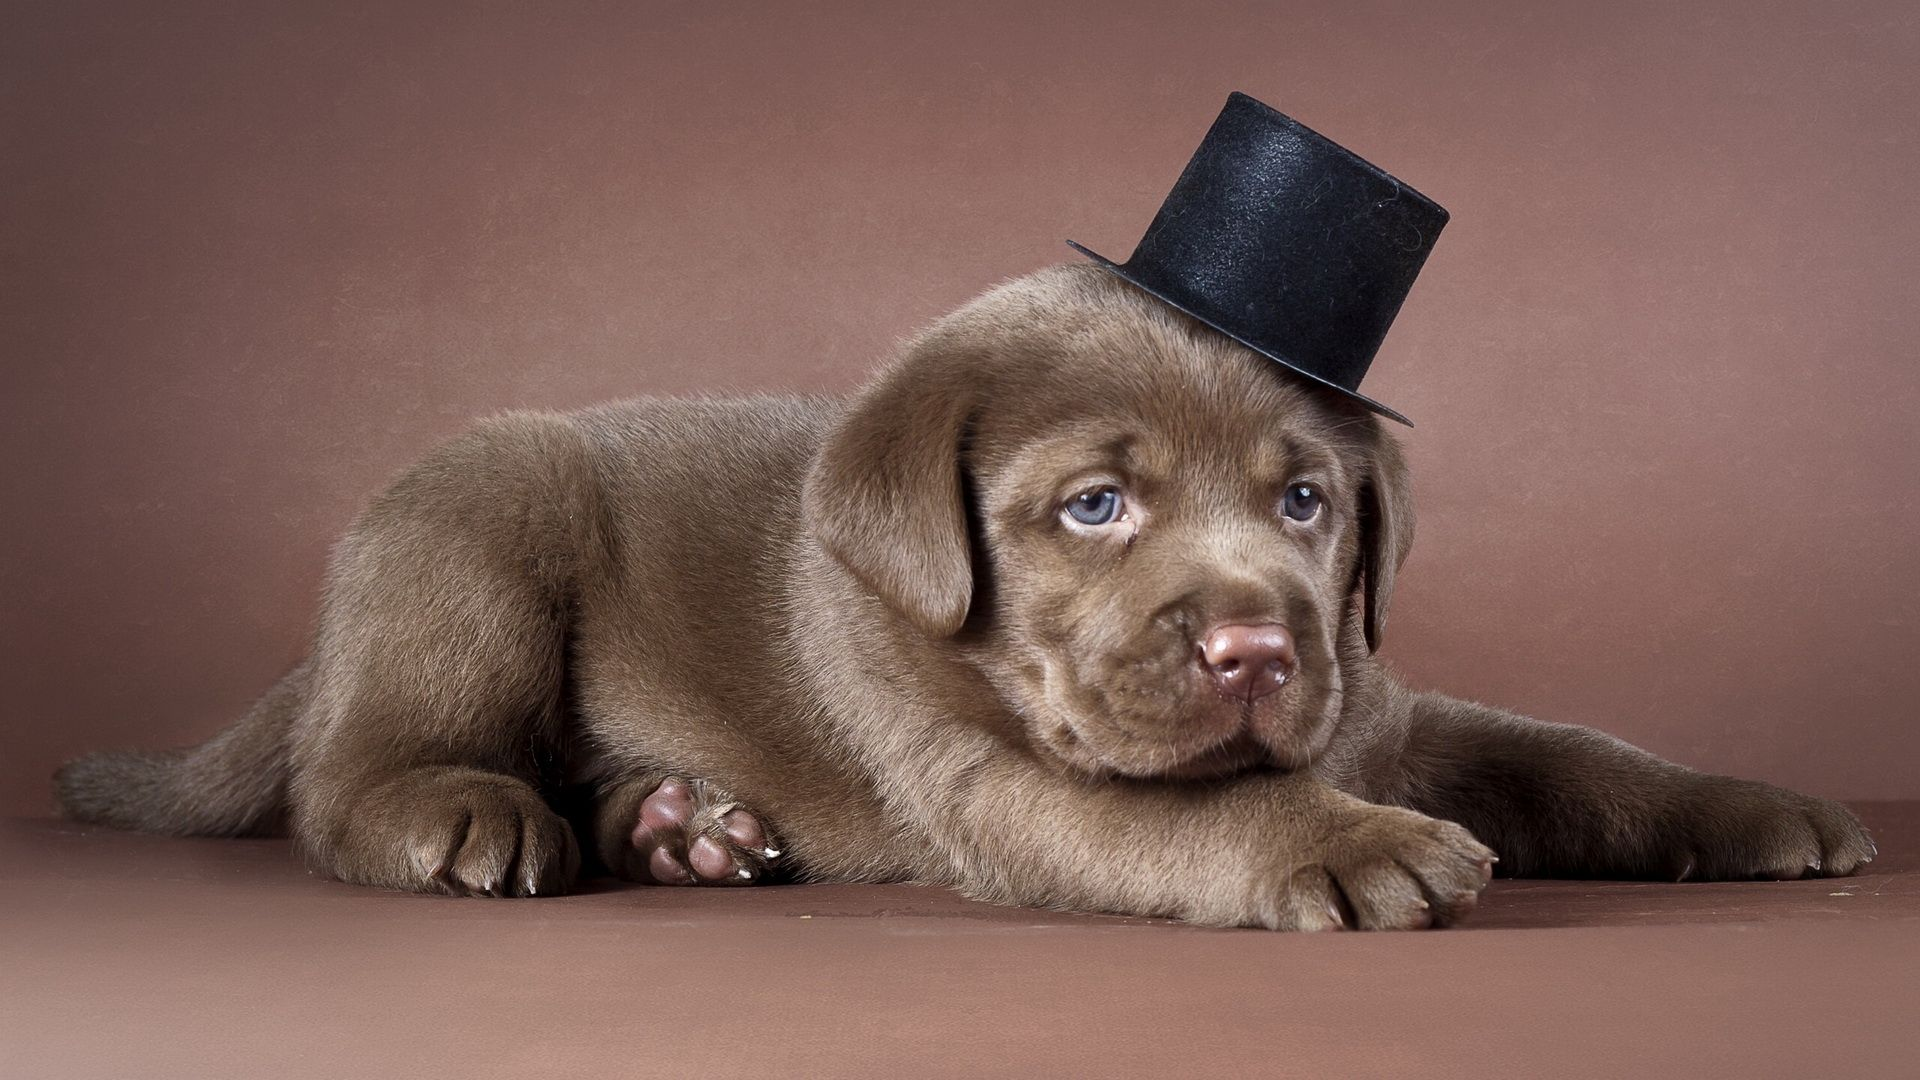 The Wallpapers Labrador Puppies